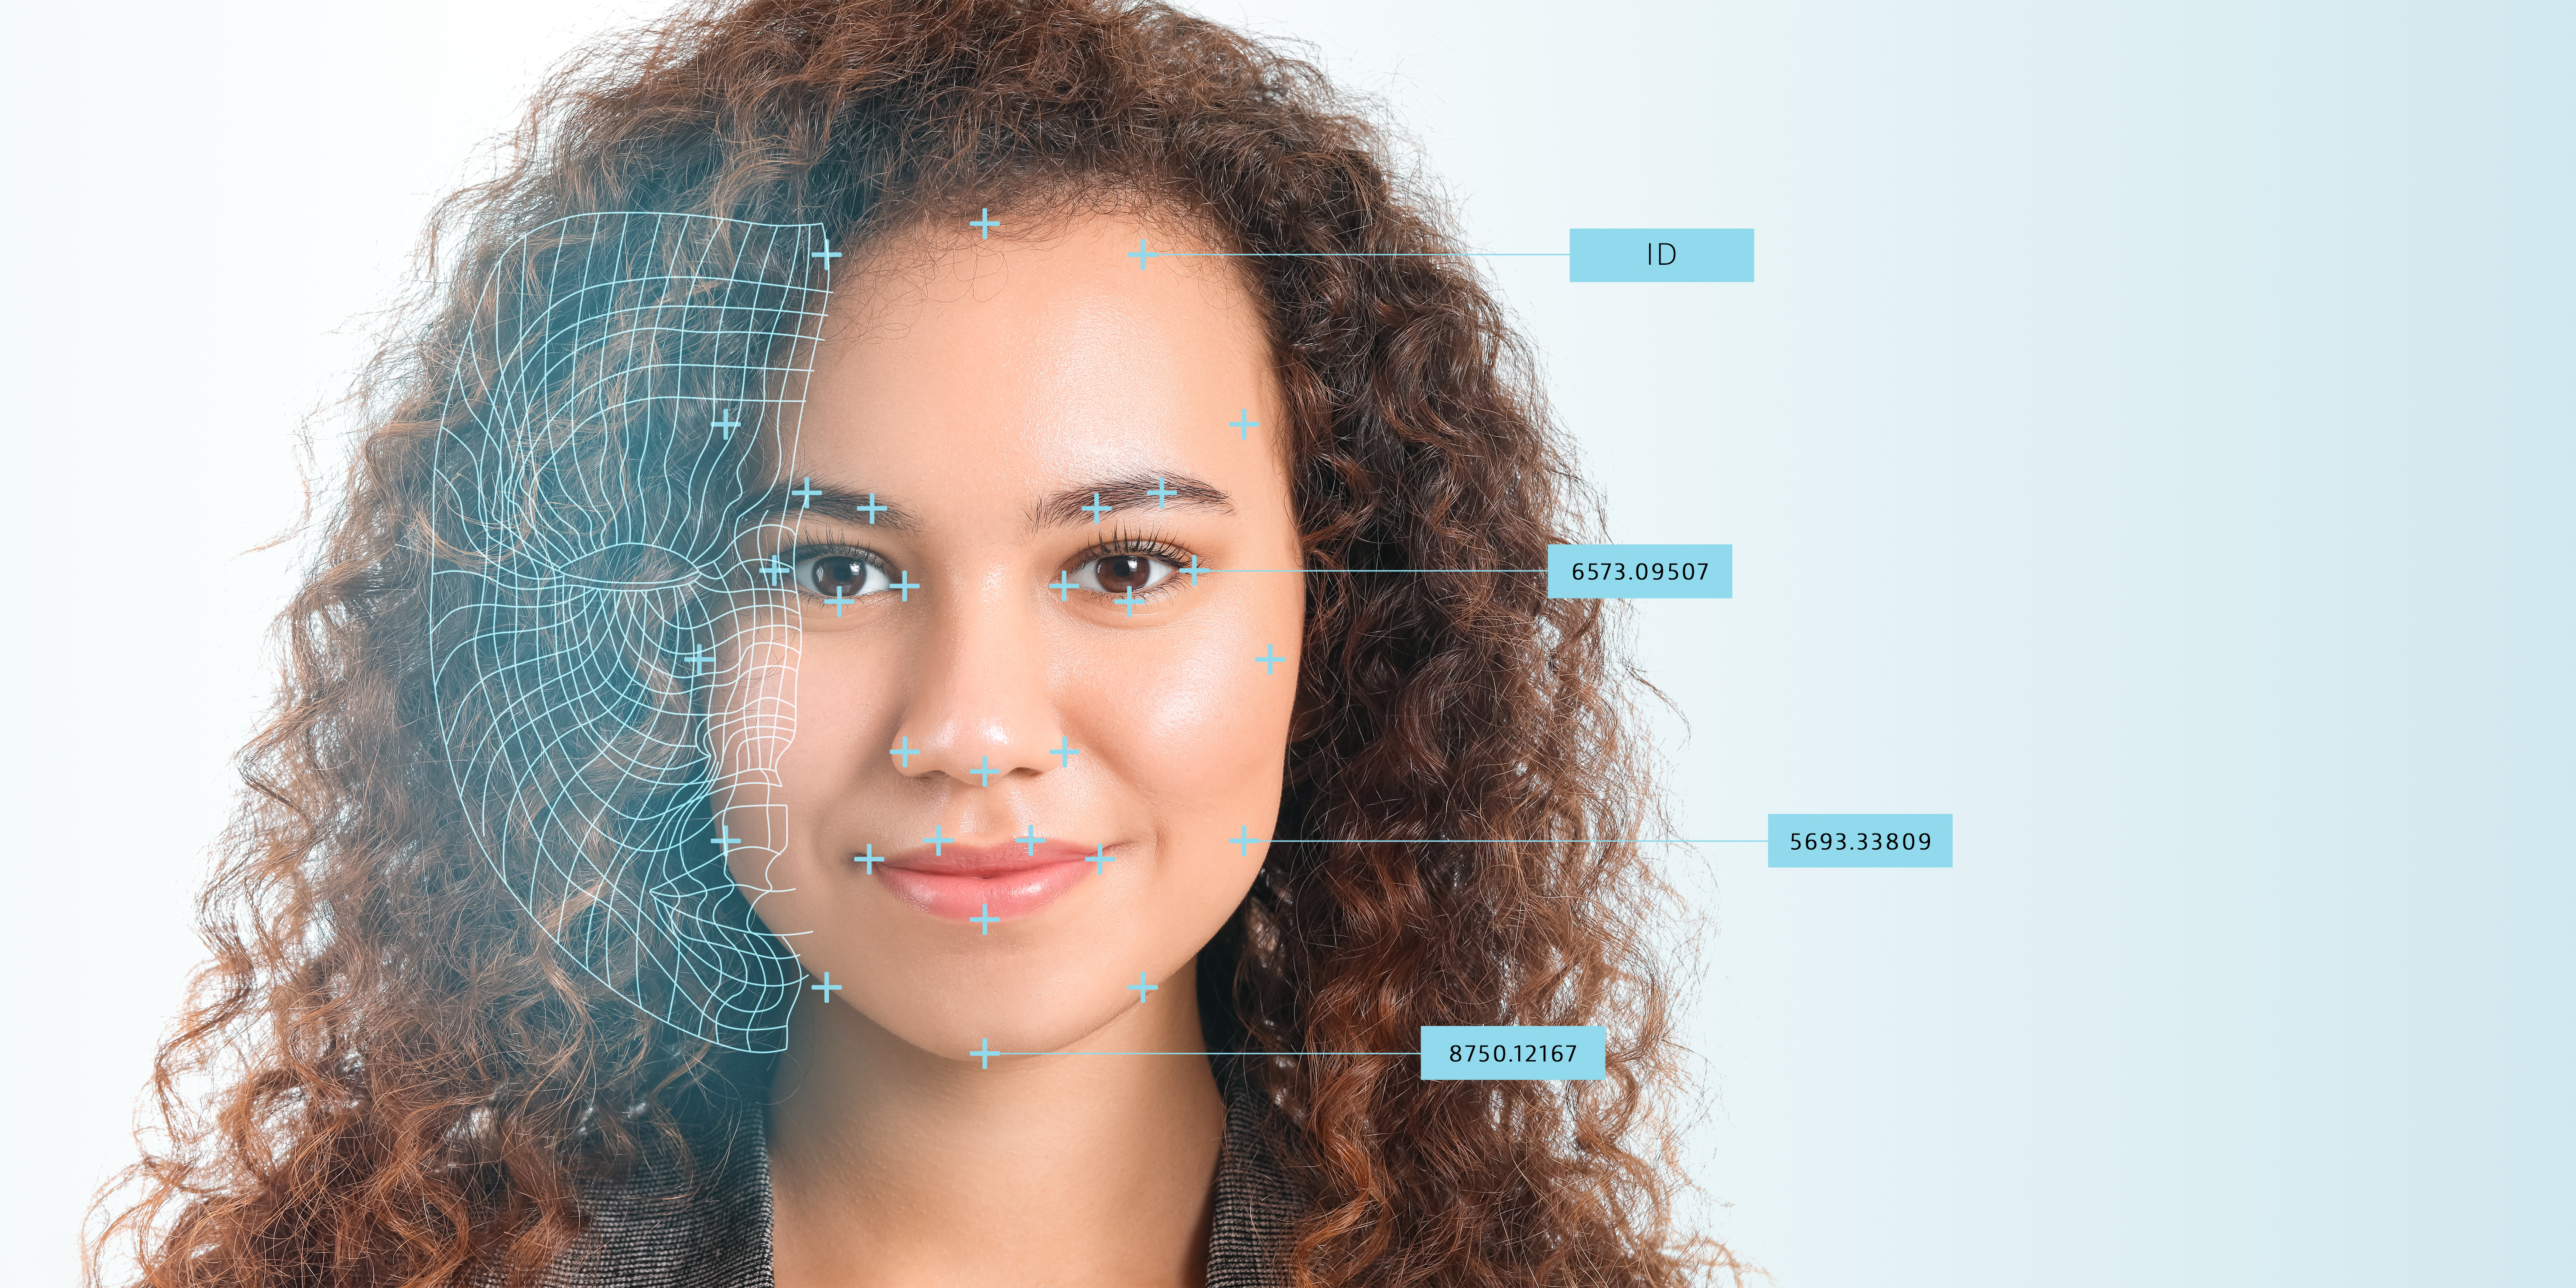 Identity Authentication and the Controversy Around Facial Recognition